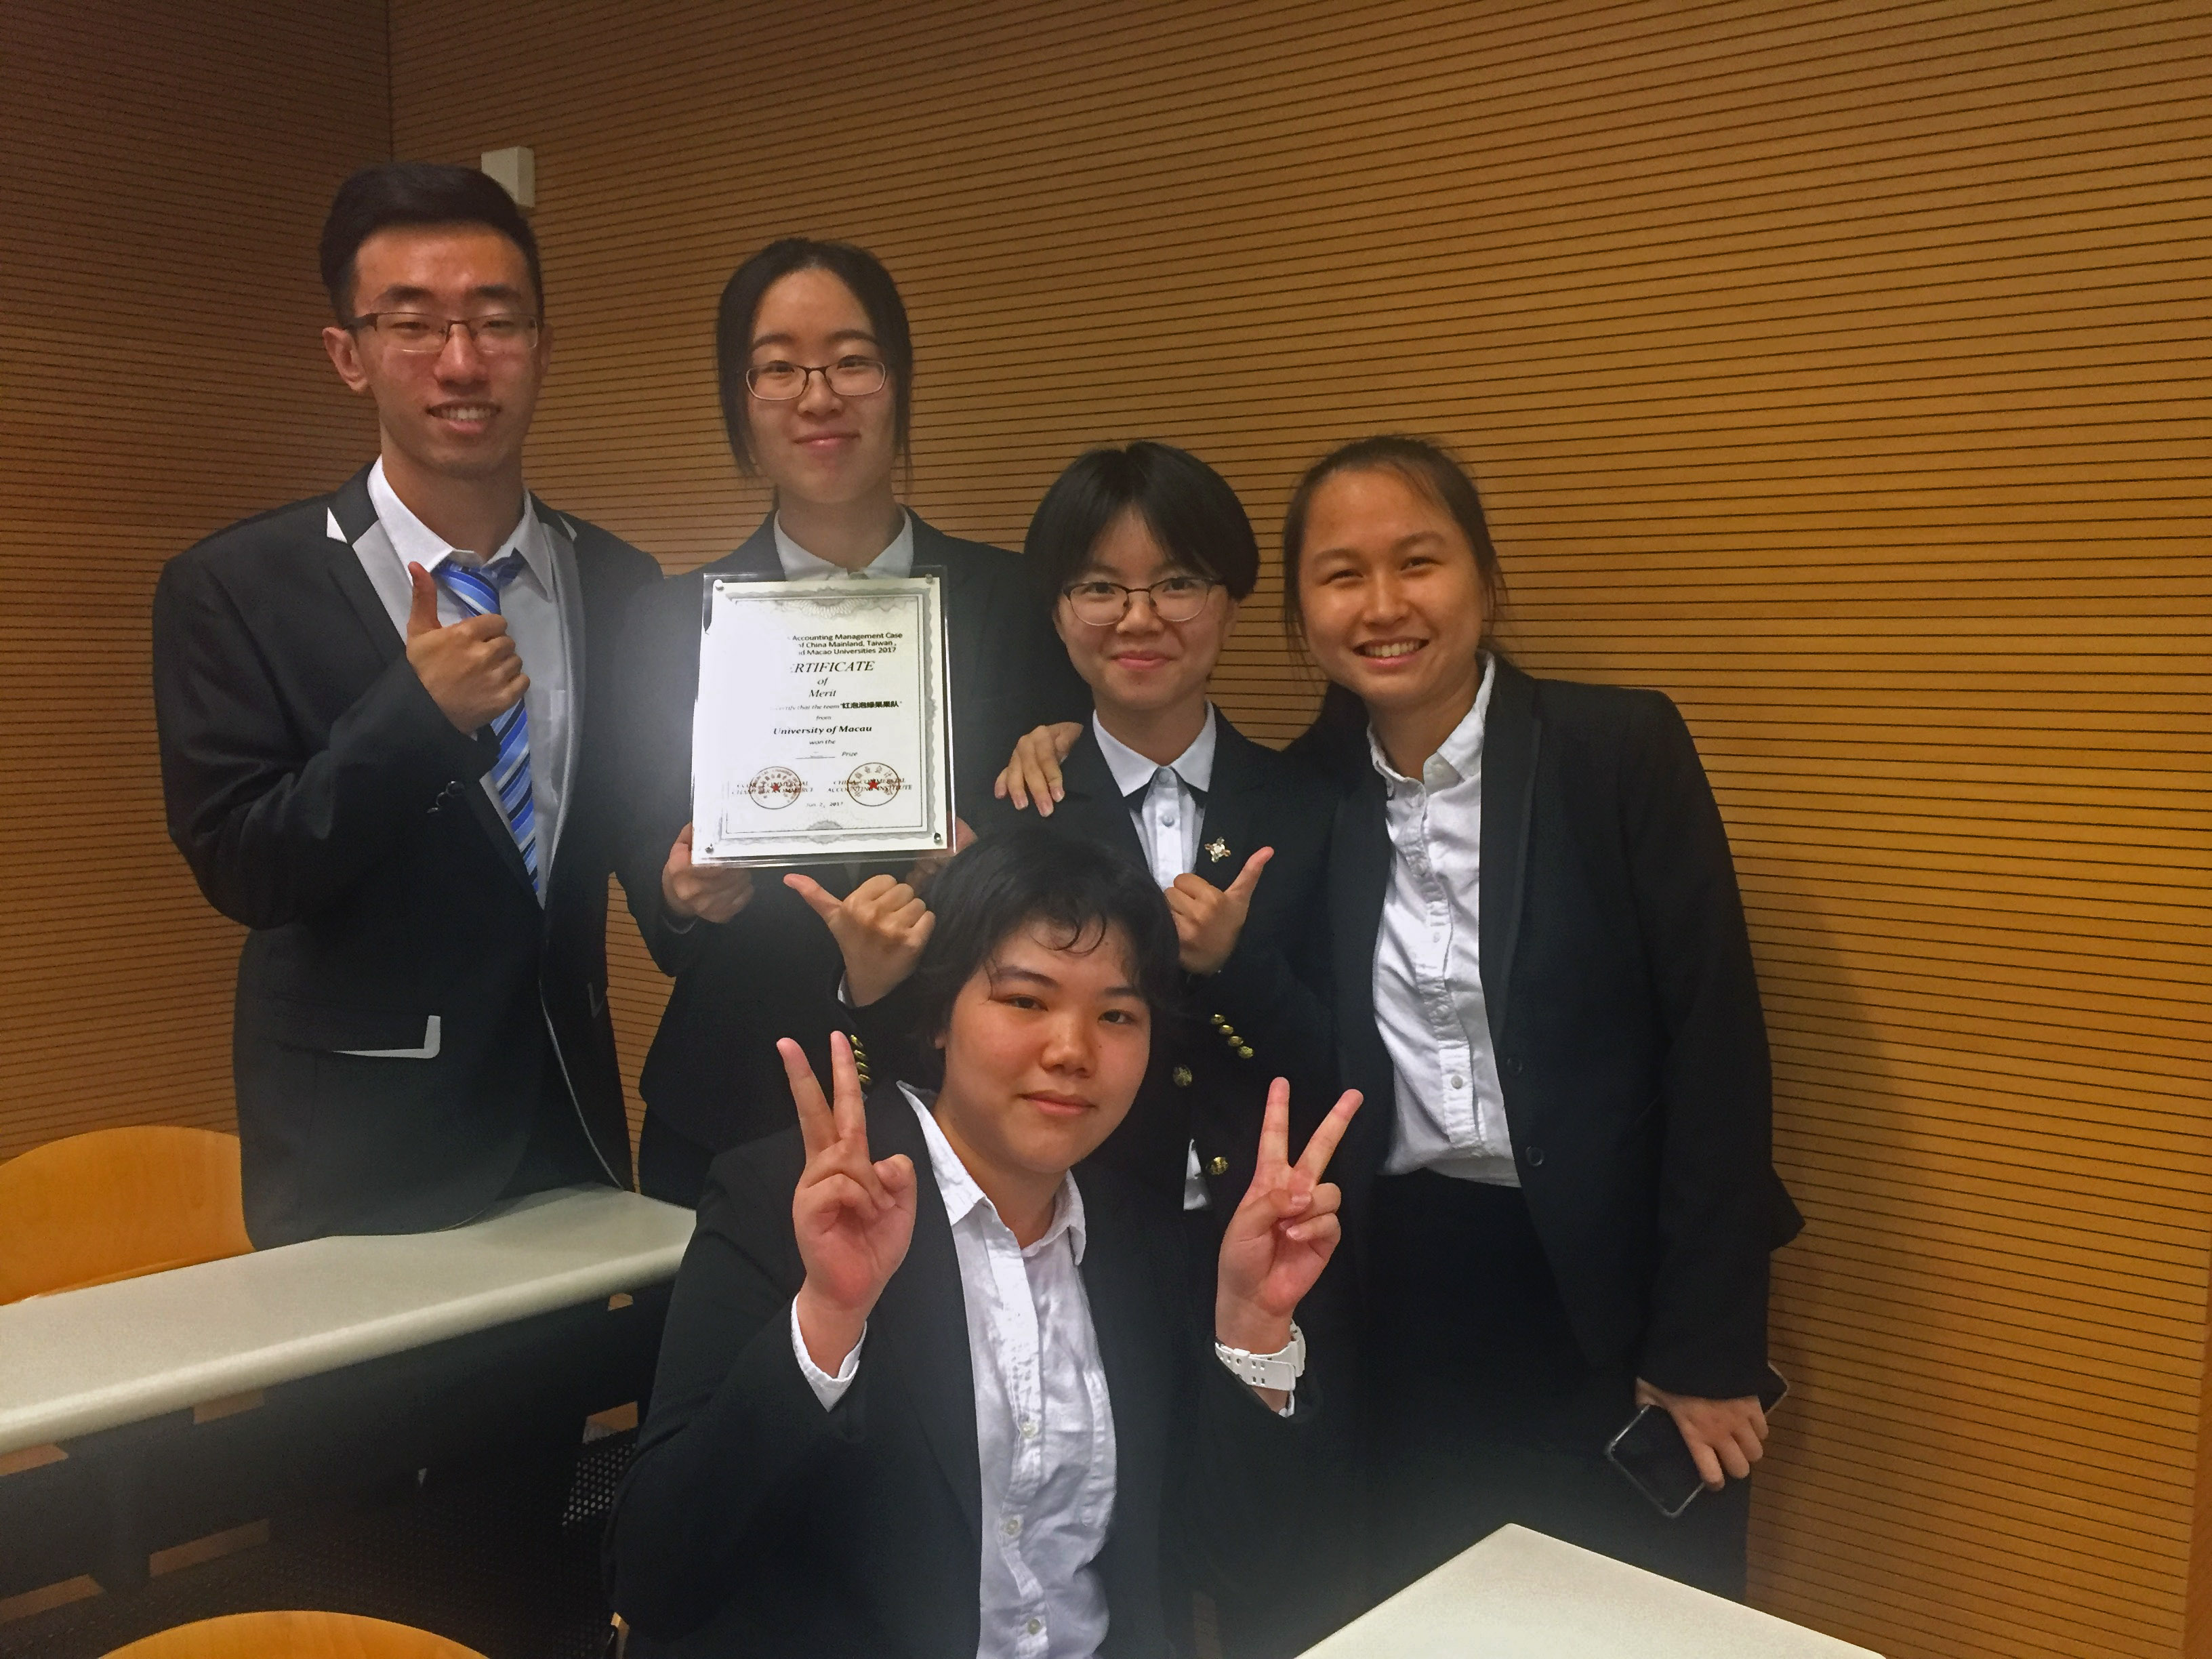 UM students win a second prize at an accounting and business management competition